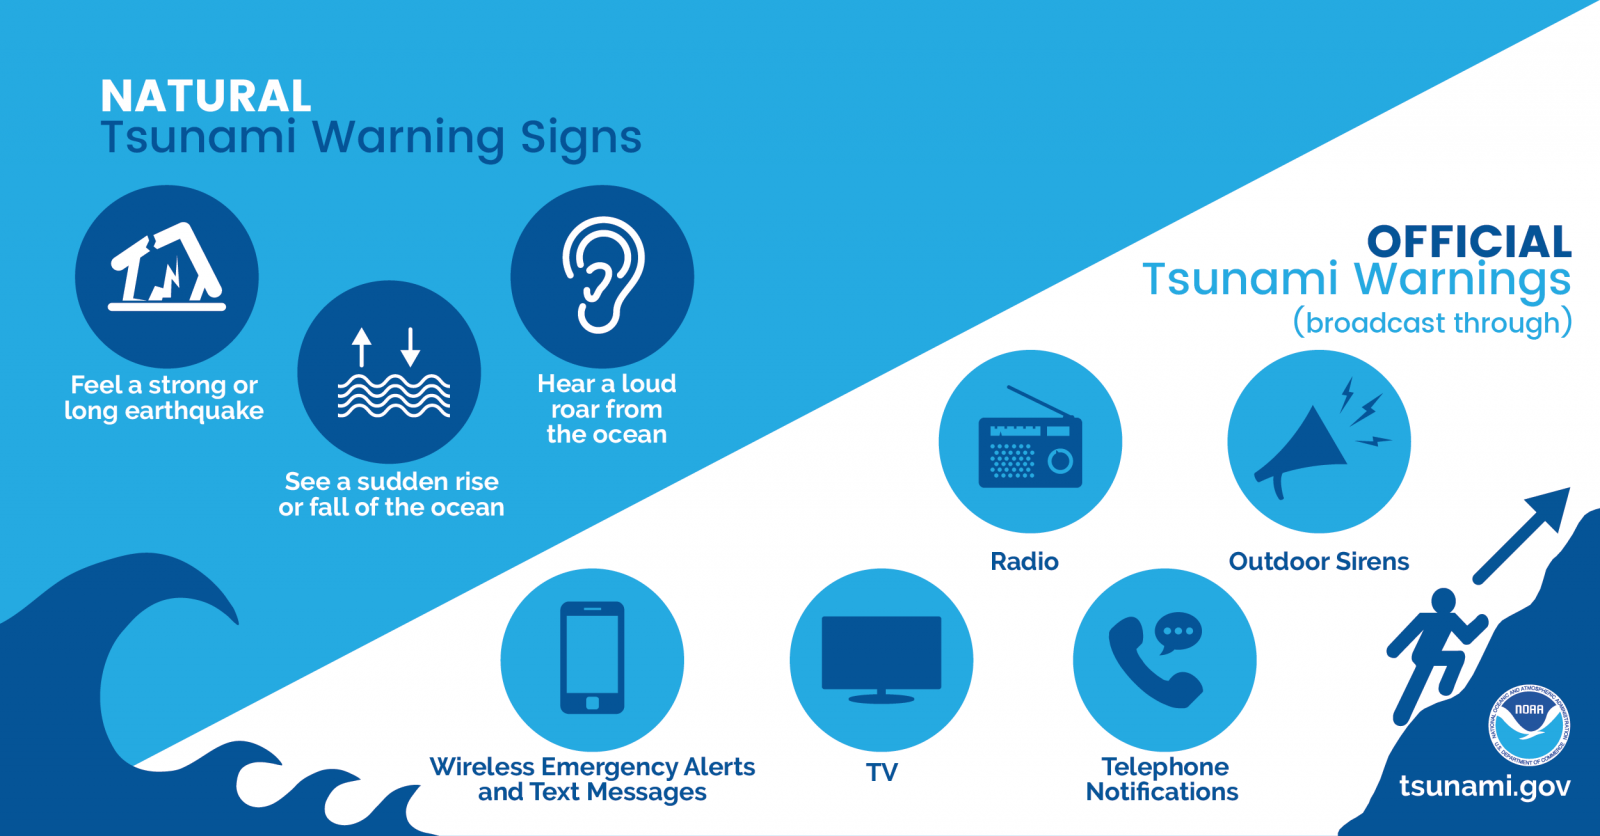 Natural Tsunami Warnings: 1) Feel a strong or long earthquake. 2) See a sudden rise or fall of the ocean. 3) Hear a loud roar from the ocean.  Official Tsunami Warnings (broadcast through): radio, outdoor sirens, Wireless Emergency Alerts, TV, Telephone notifications.